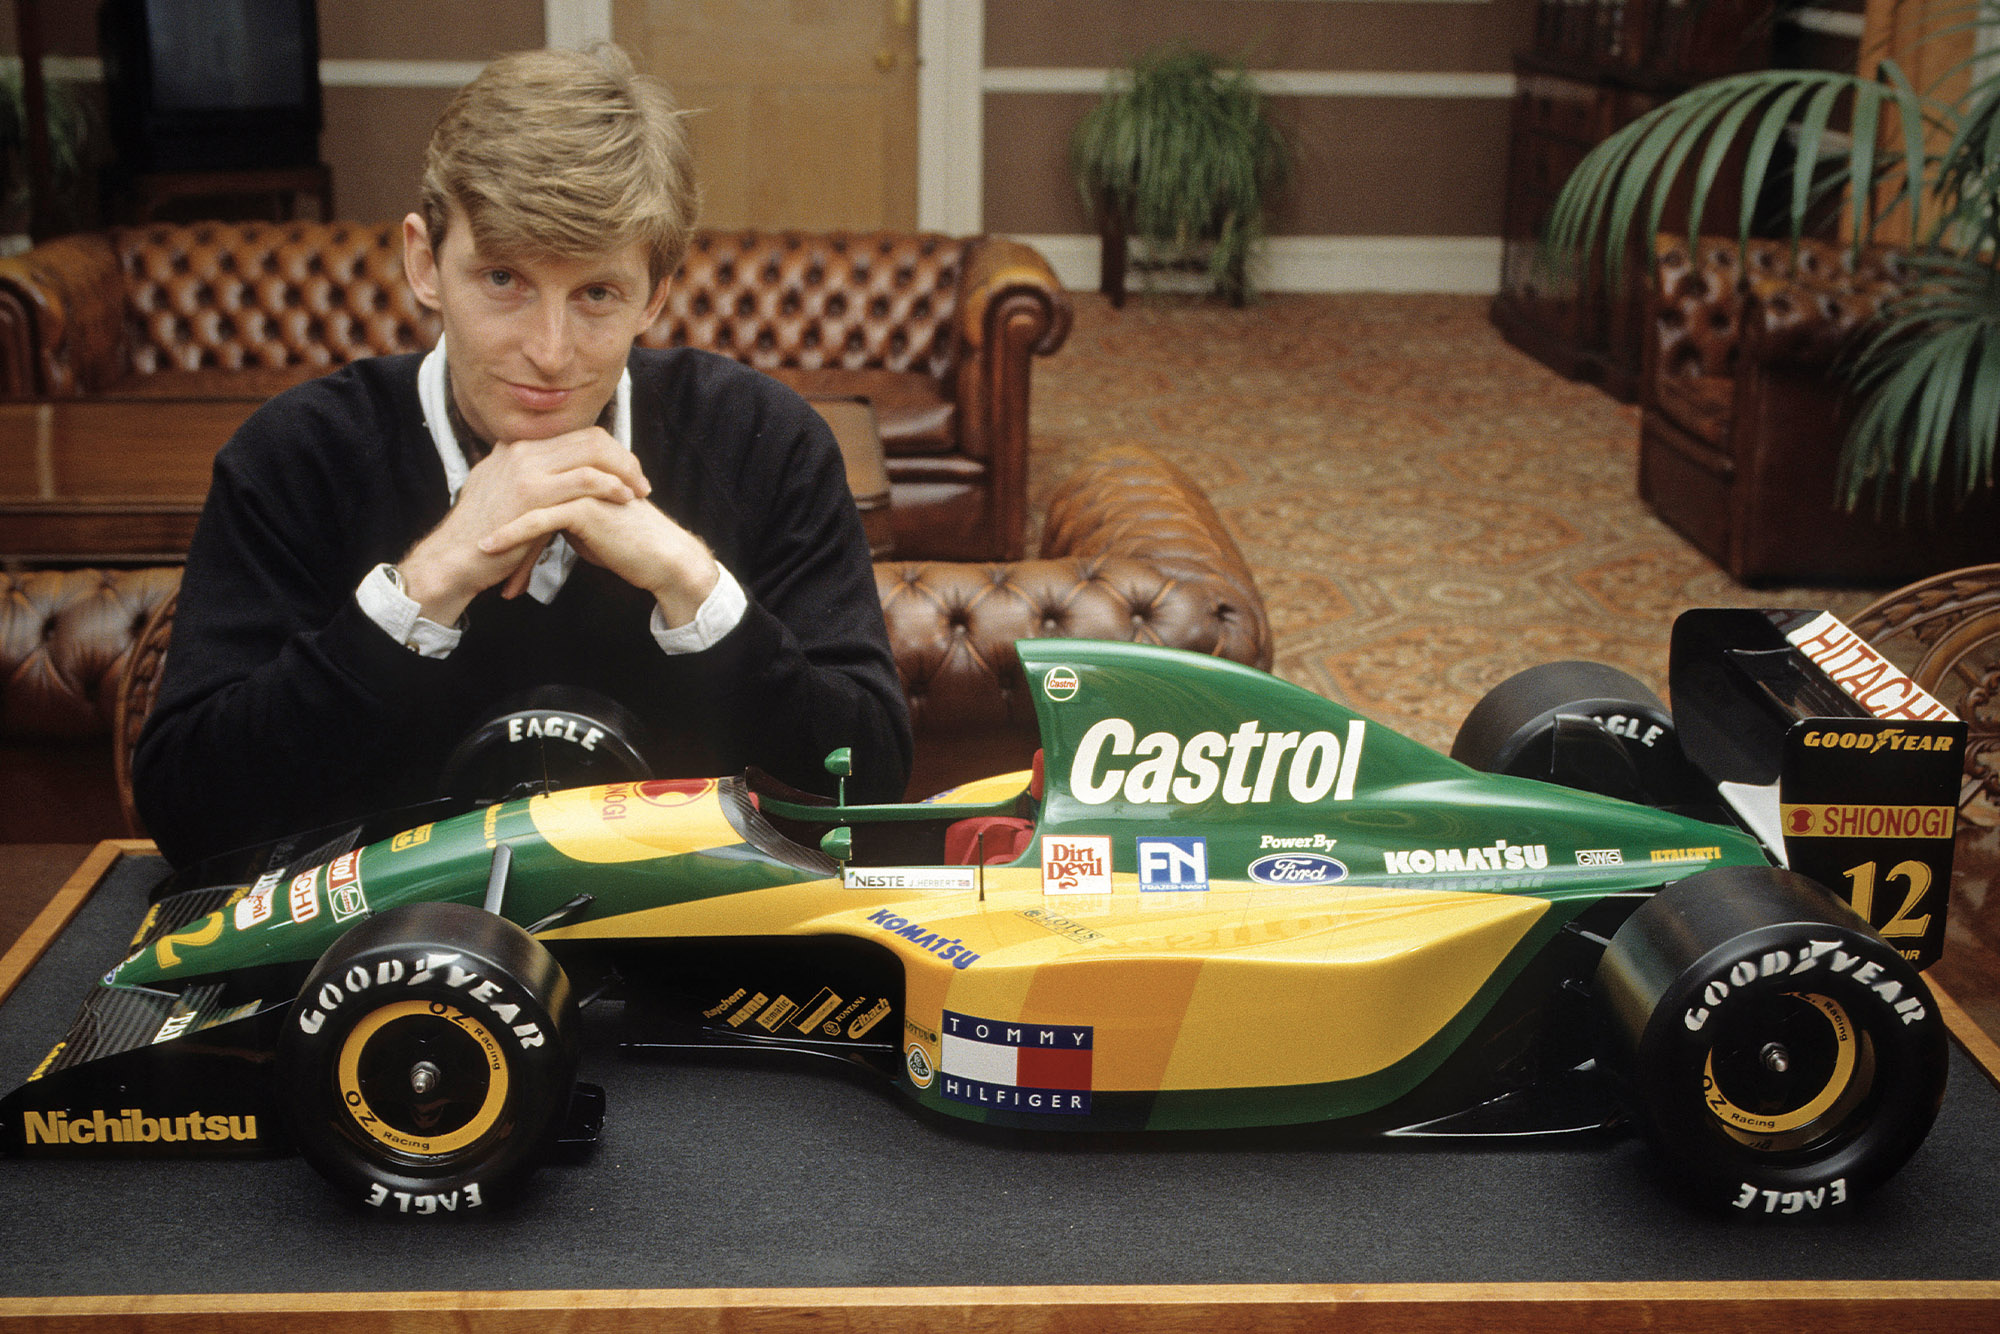 Chris Murphy with a model of the 1993 Lotus F1 car